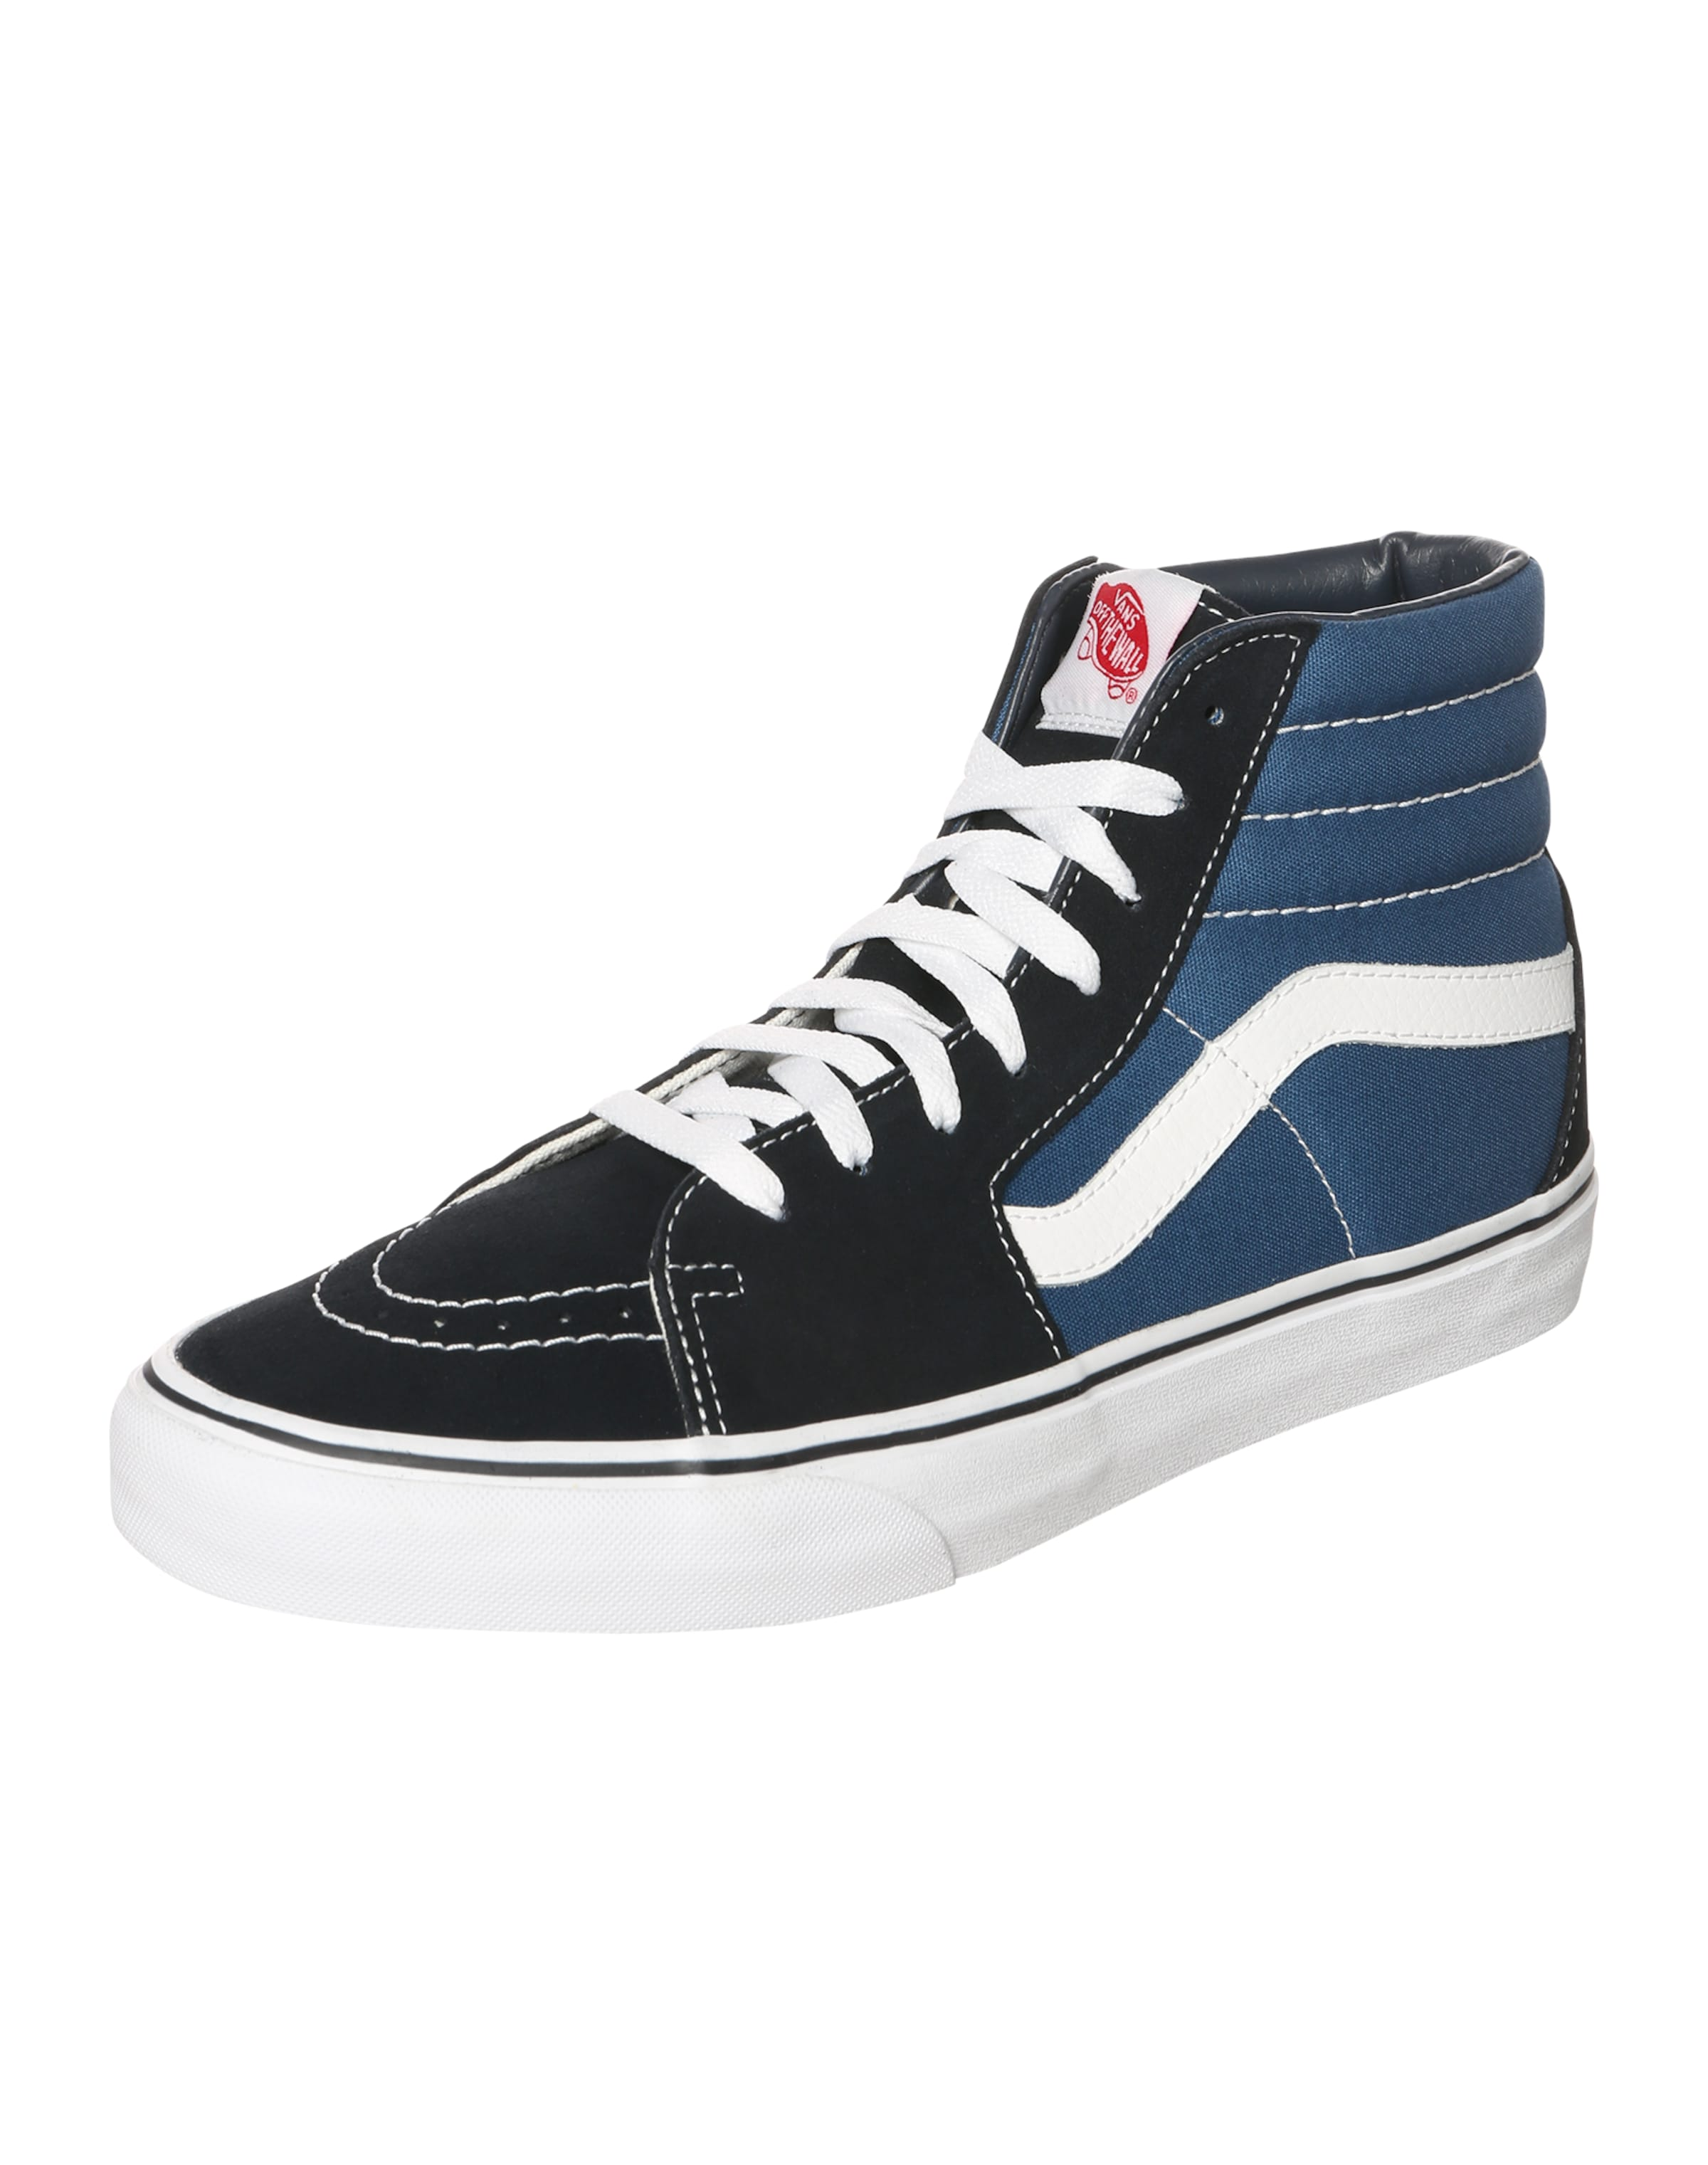 Vans hi' In Top Sneaker 'sk8 SchwarzWeiß High IbvY7f6gy